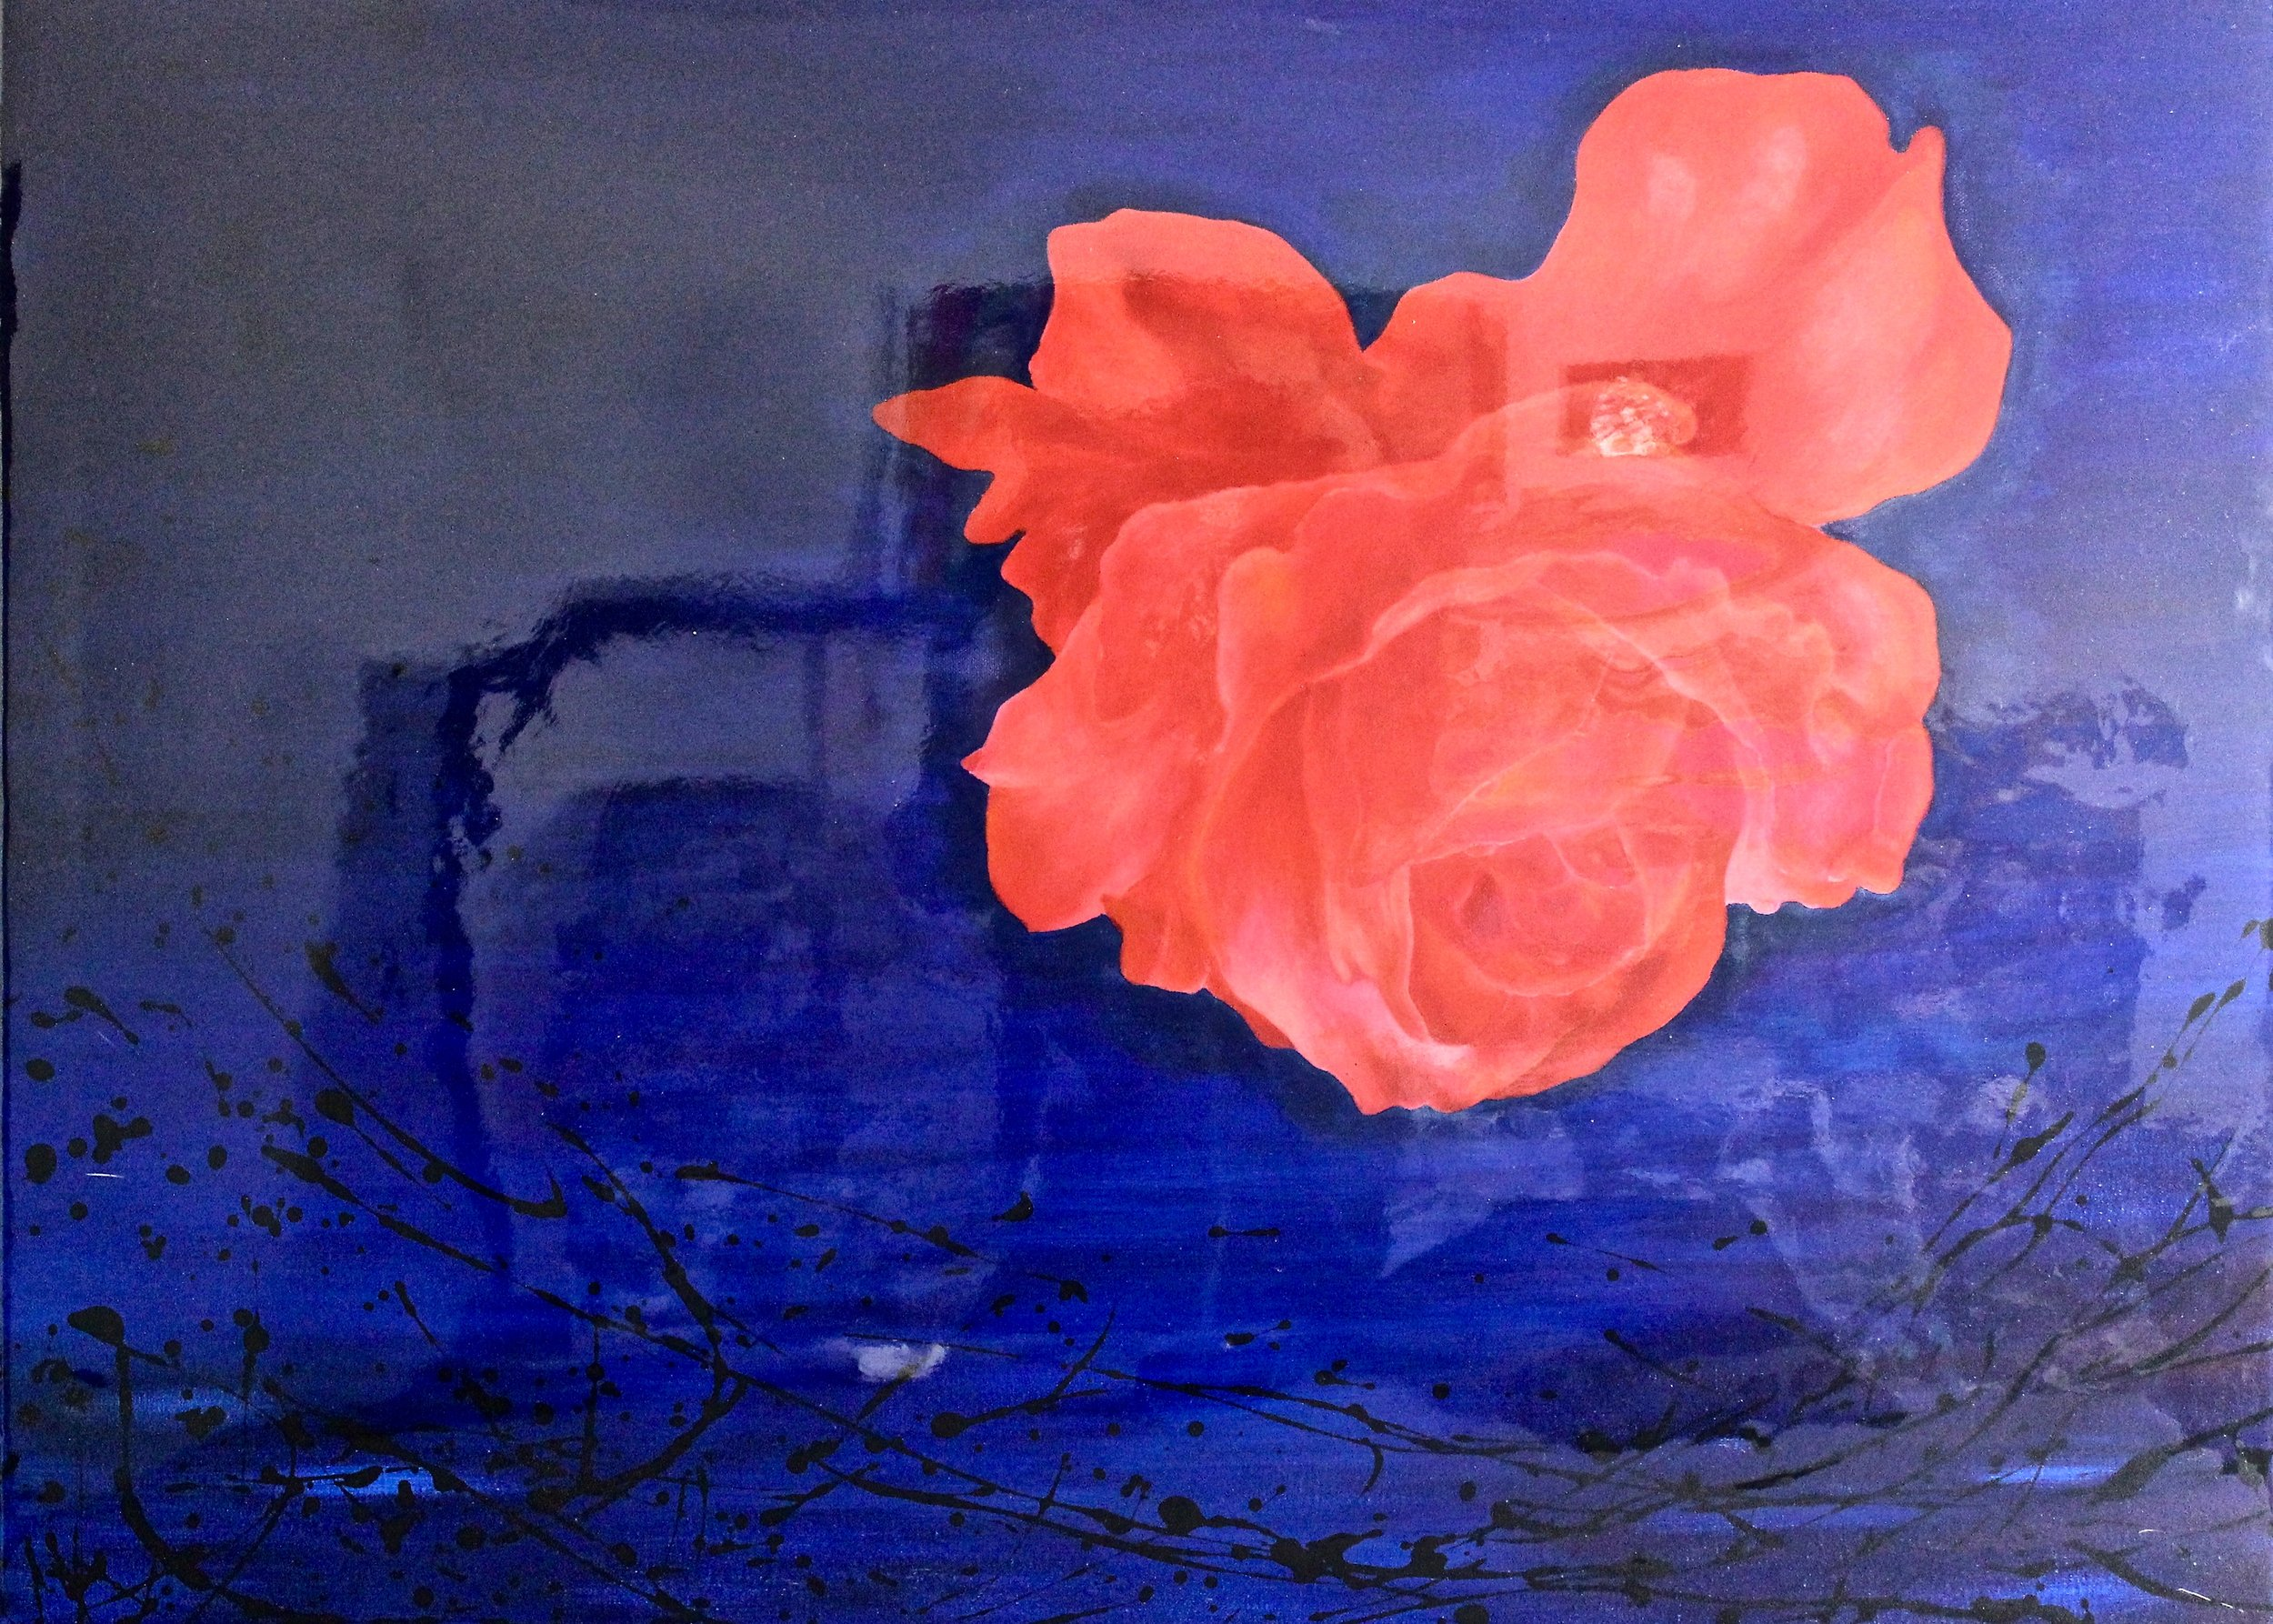 The Blooming -  2018 oil on canvas sealed with resin 76cm x 102cm